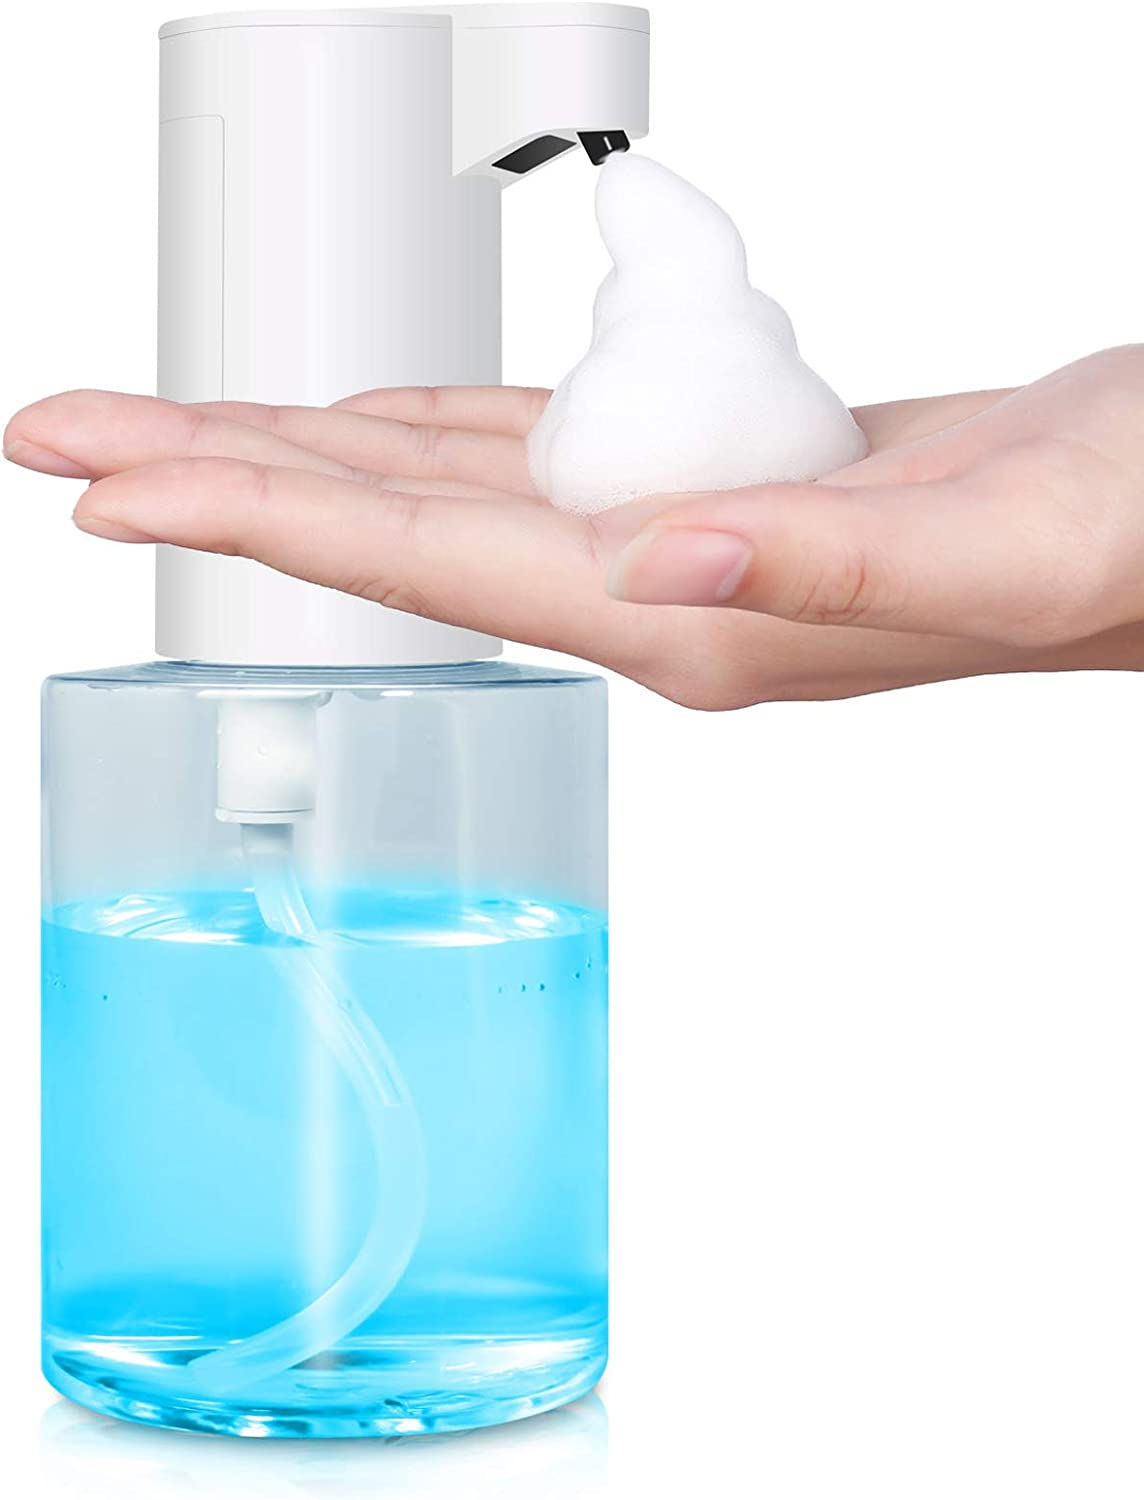 Touchless Soap Dispenser, Automatic Foaming Soap Dispenser Battery Operated with Infrared Motion Sensor / Waterproof Base for Bathroom Kitchen Office Hotel Restaurant Countertop - 350ML